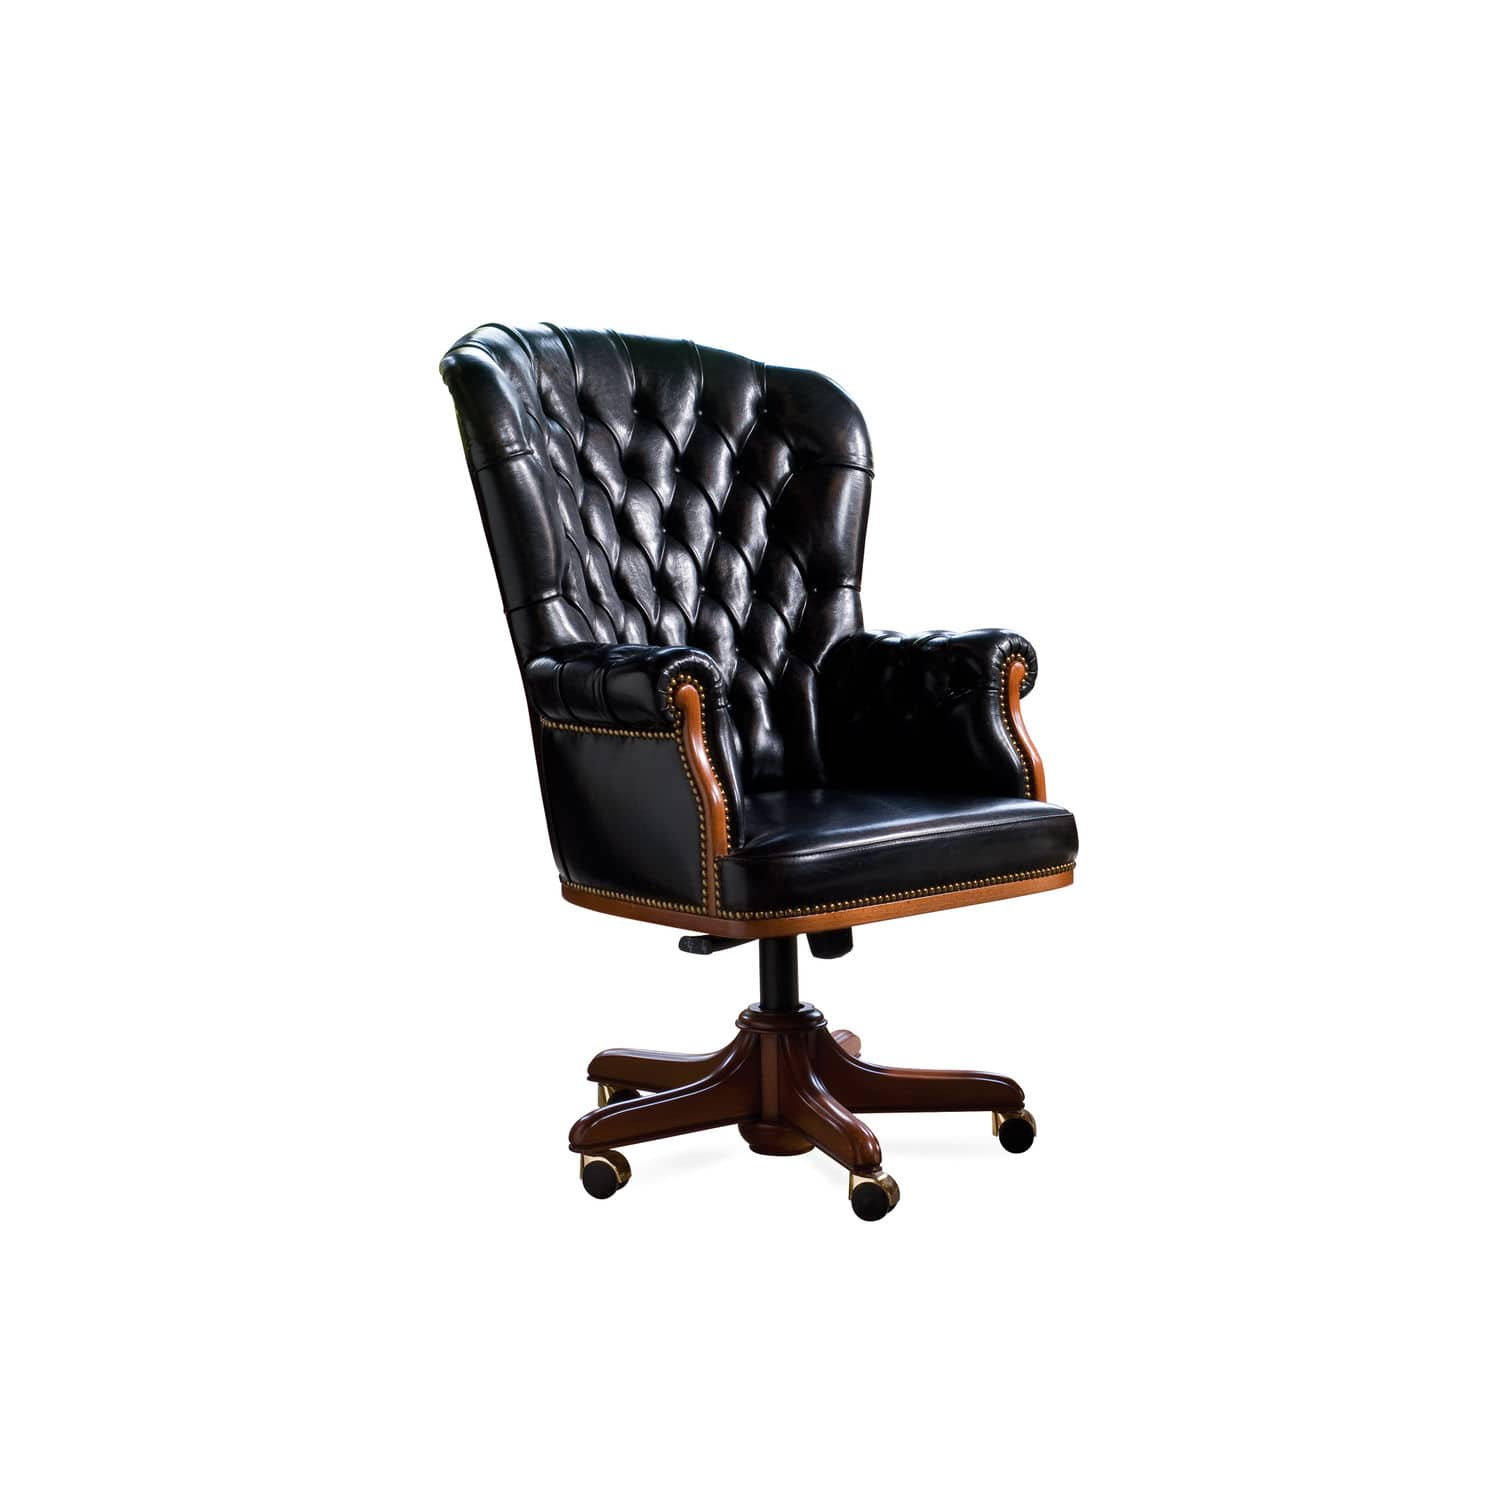 president office chair black. Chesterfield Executive Chair / Wooden Leather On Casters - PRESIDENT President Office Black